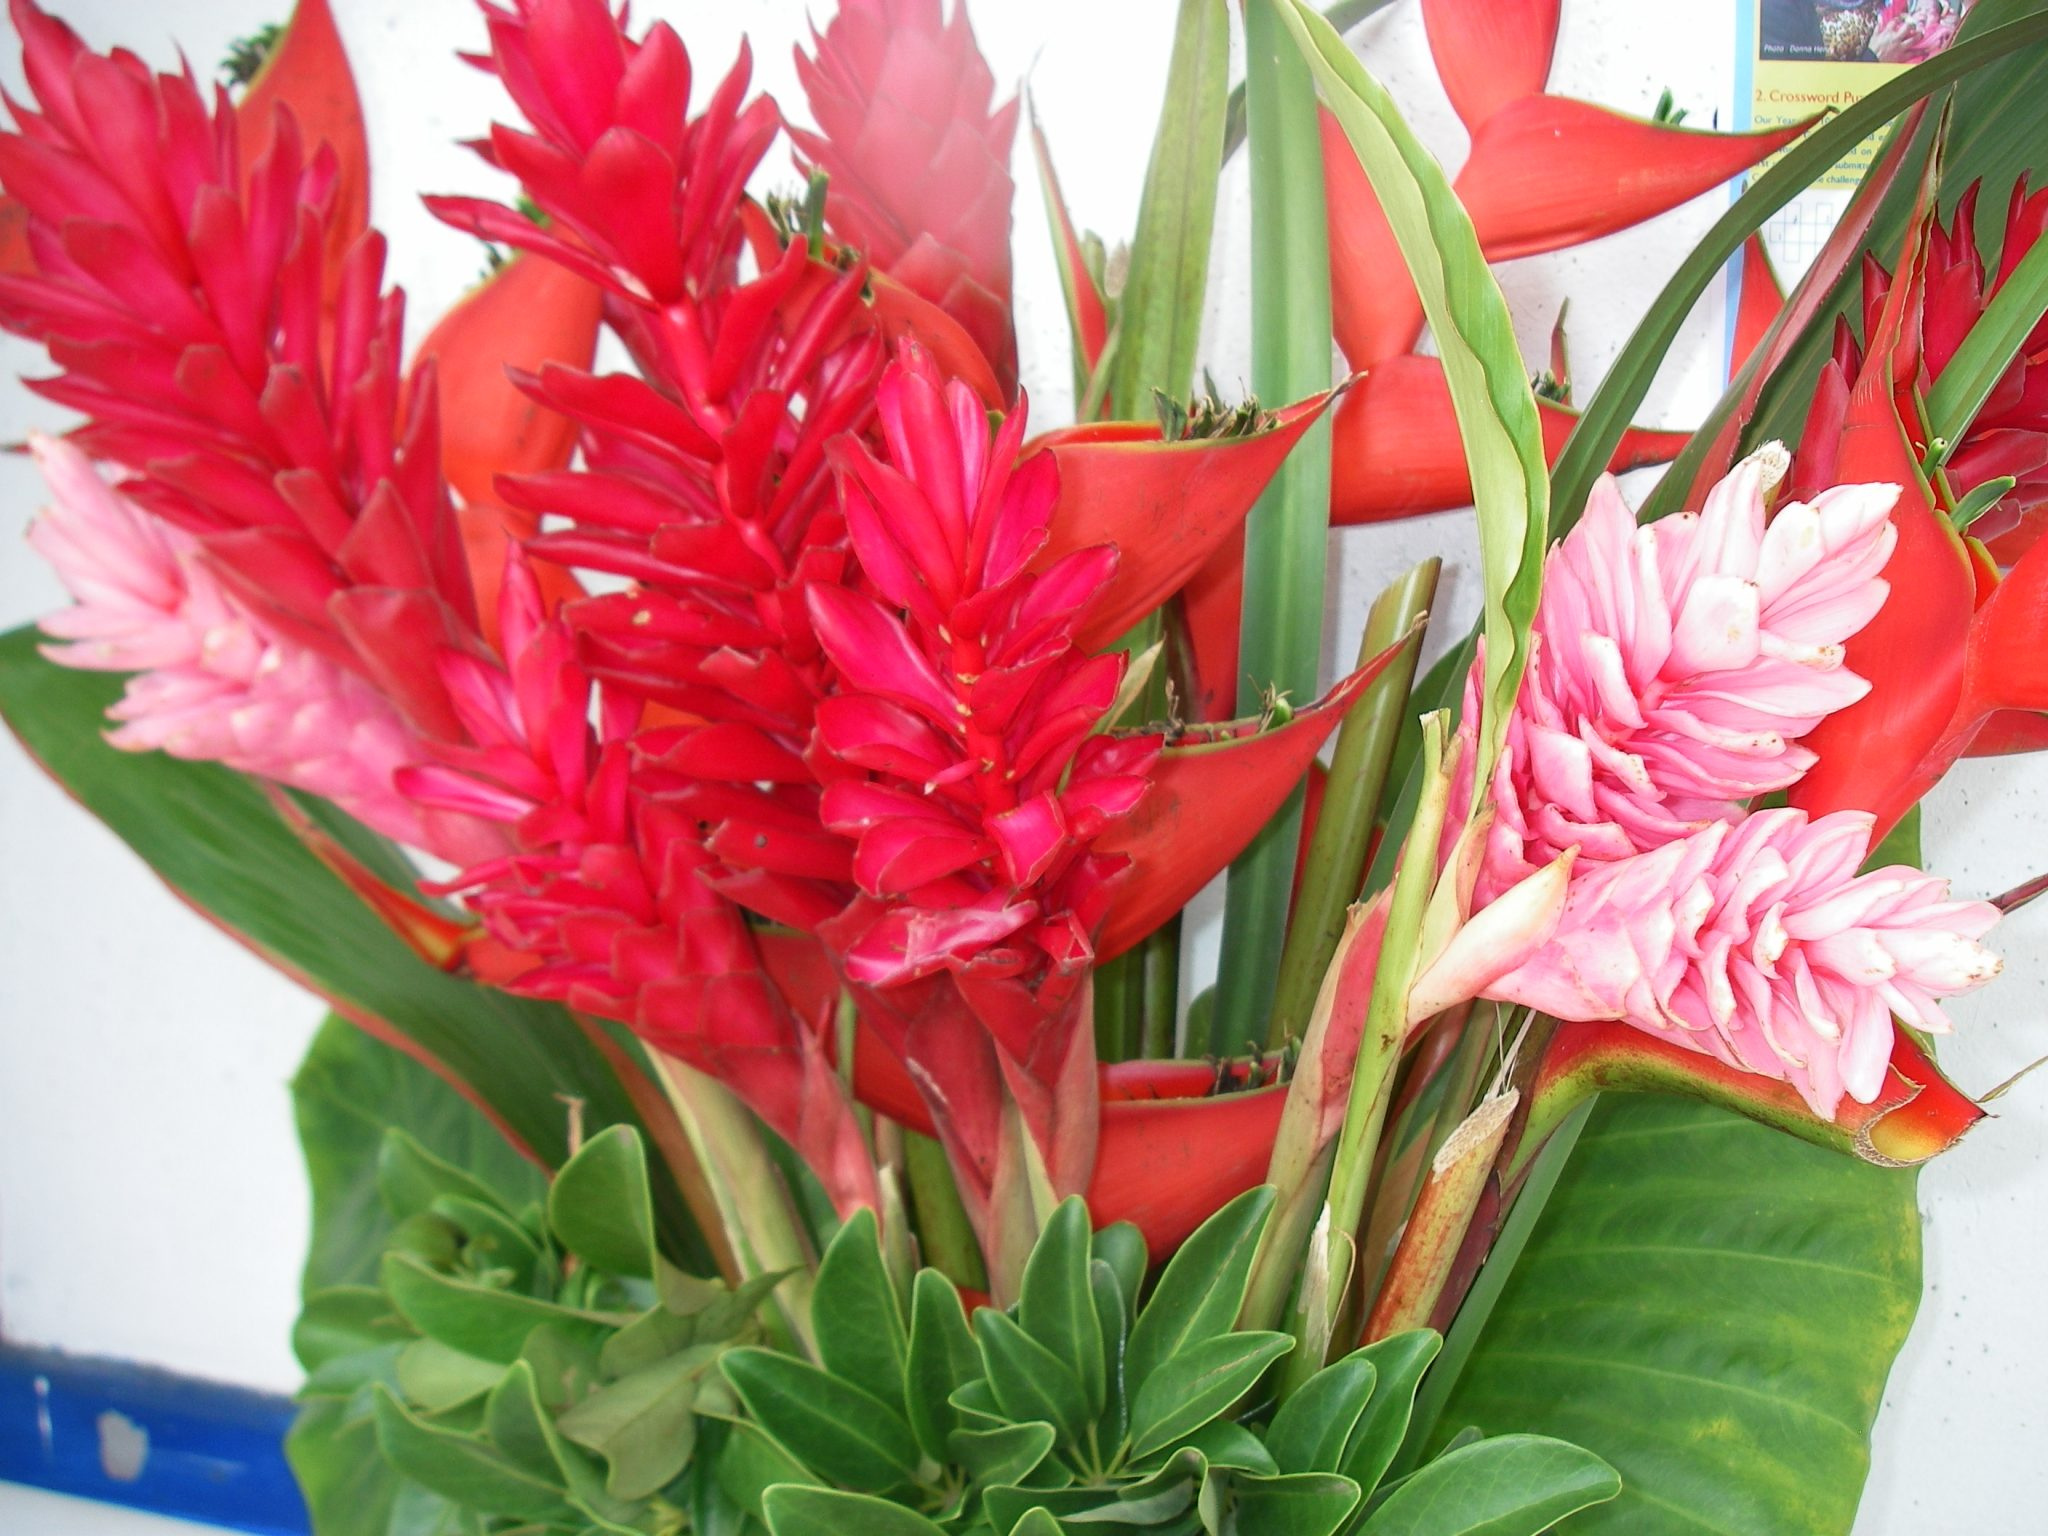 93-bright-fresh-flowers-from-vanuatu-were-displayed-by-the-alter-of-the-church